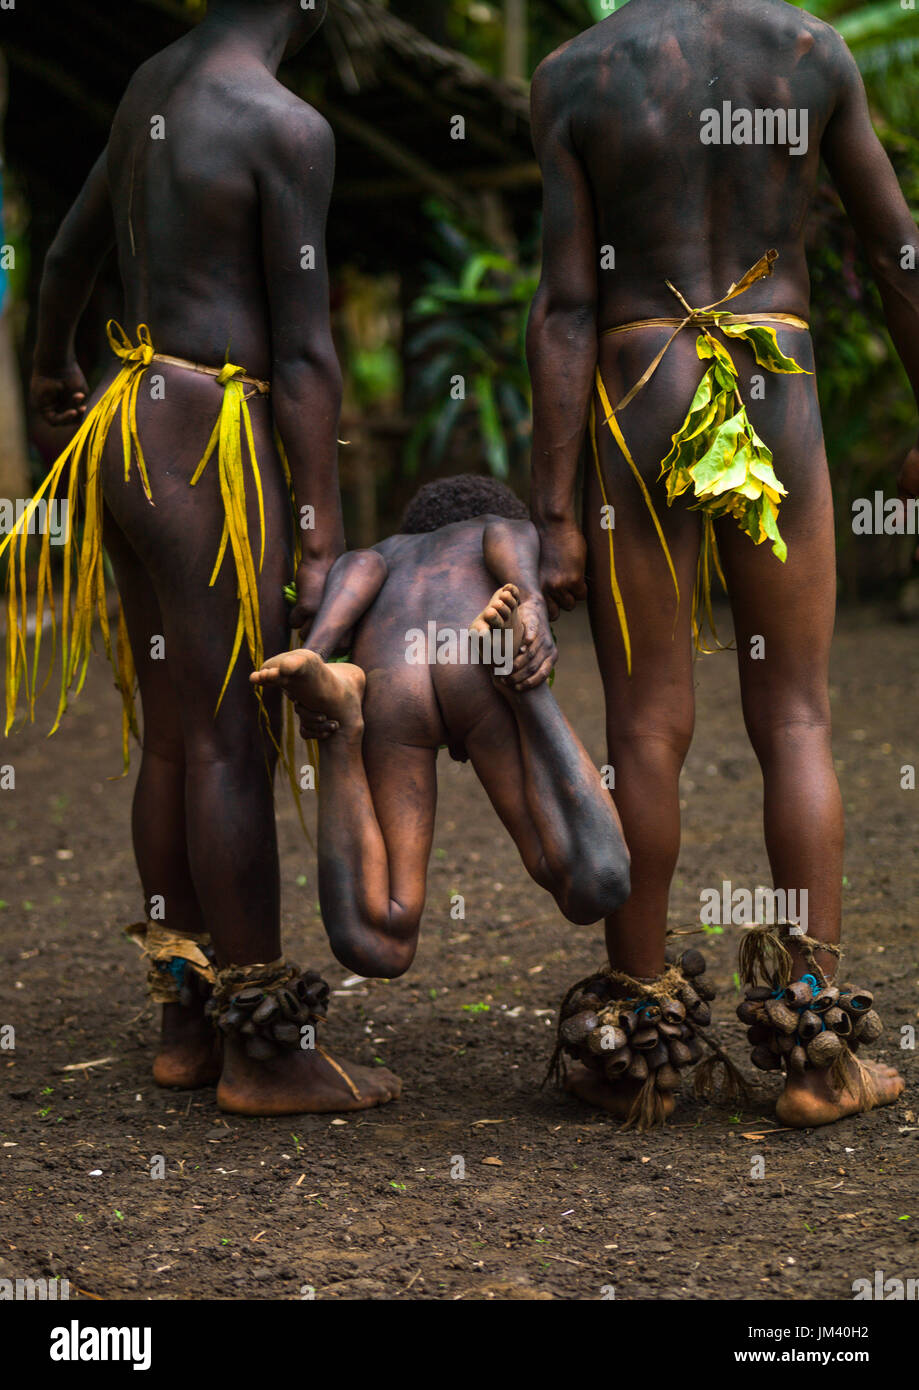 Small Nambas tribesmen demonstrating with a child a traditional stretcher made from leaves, Malekula island, Gortiengser, Vanuatu - Stock Image